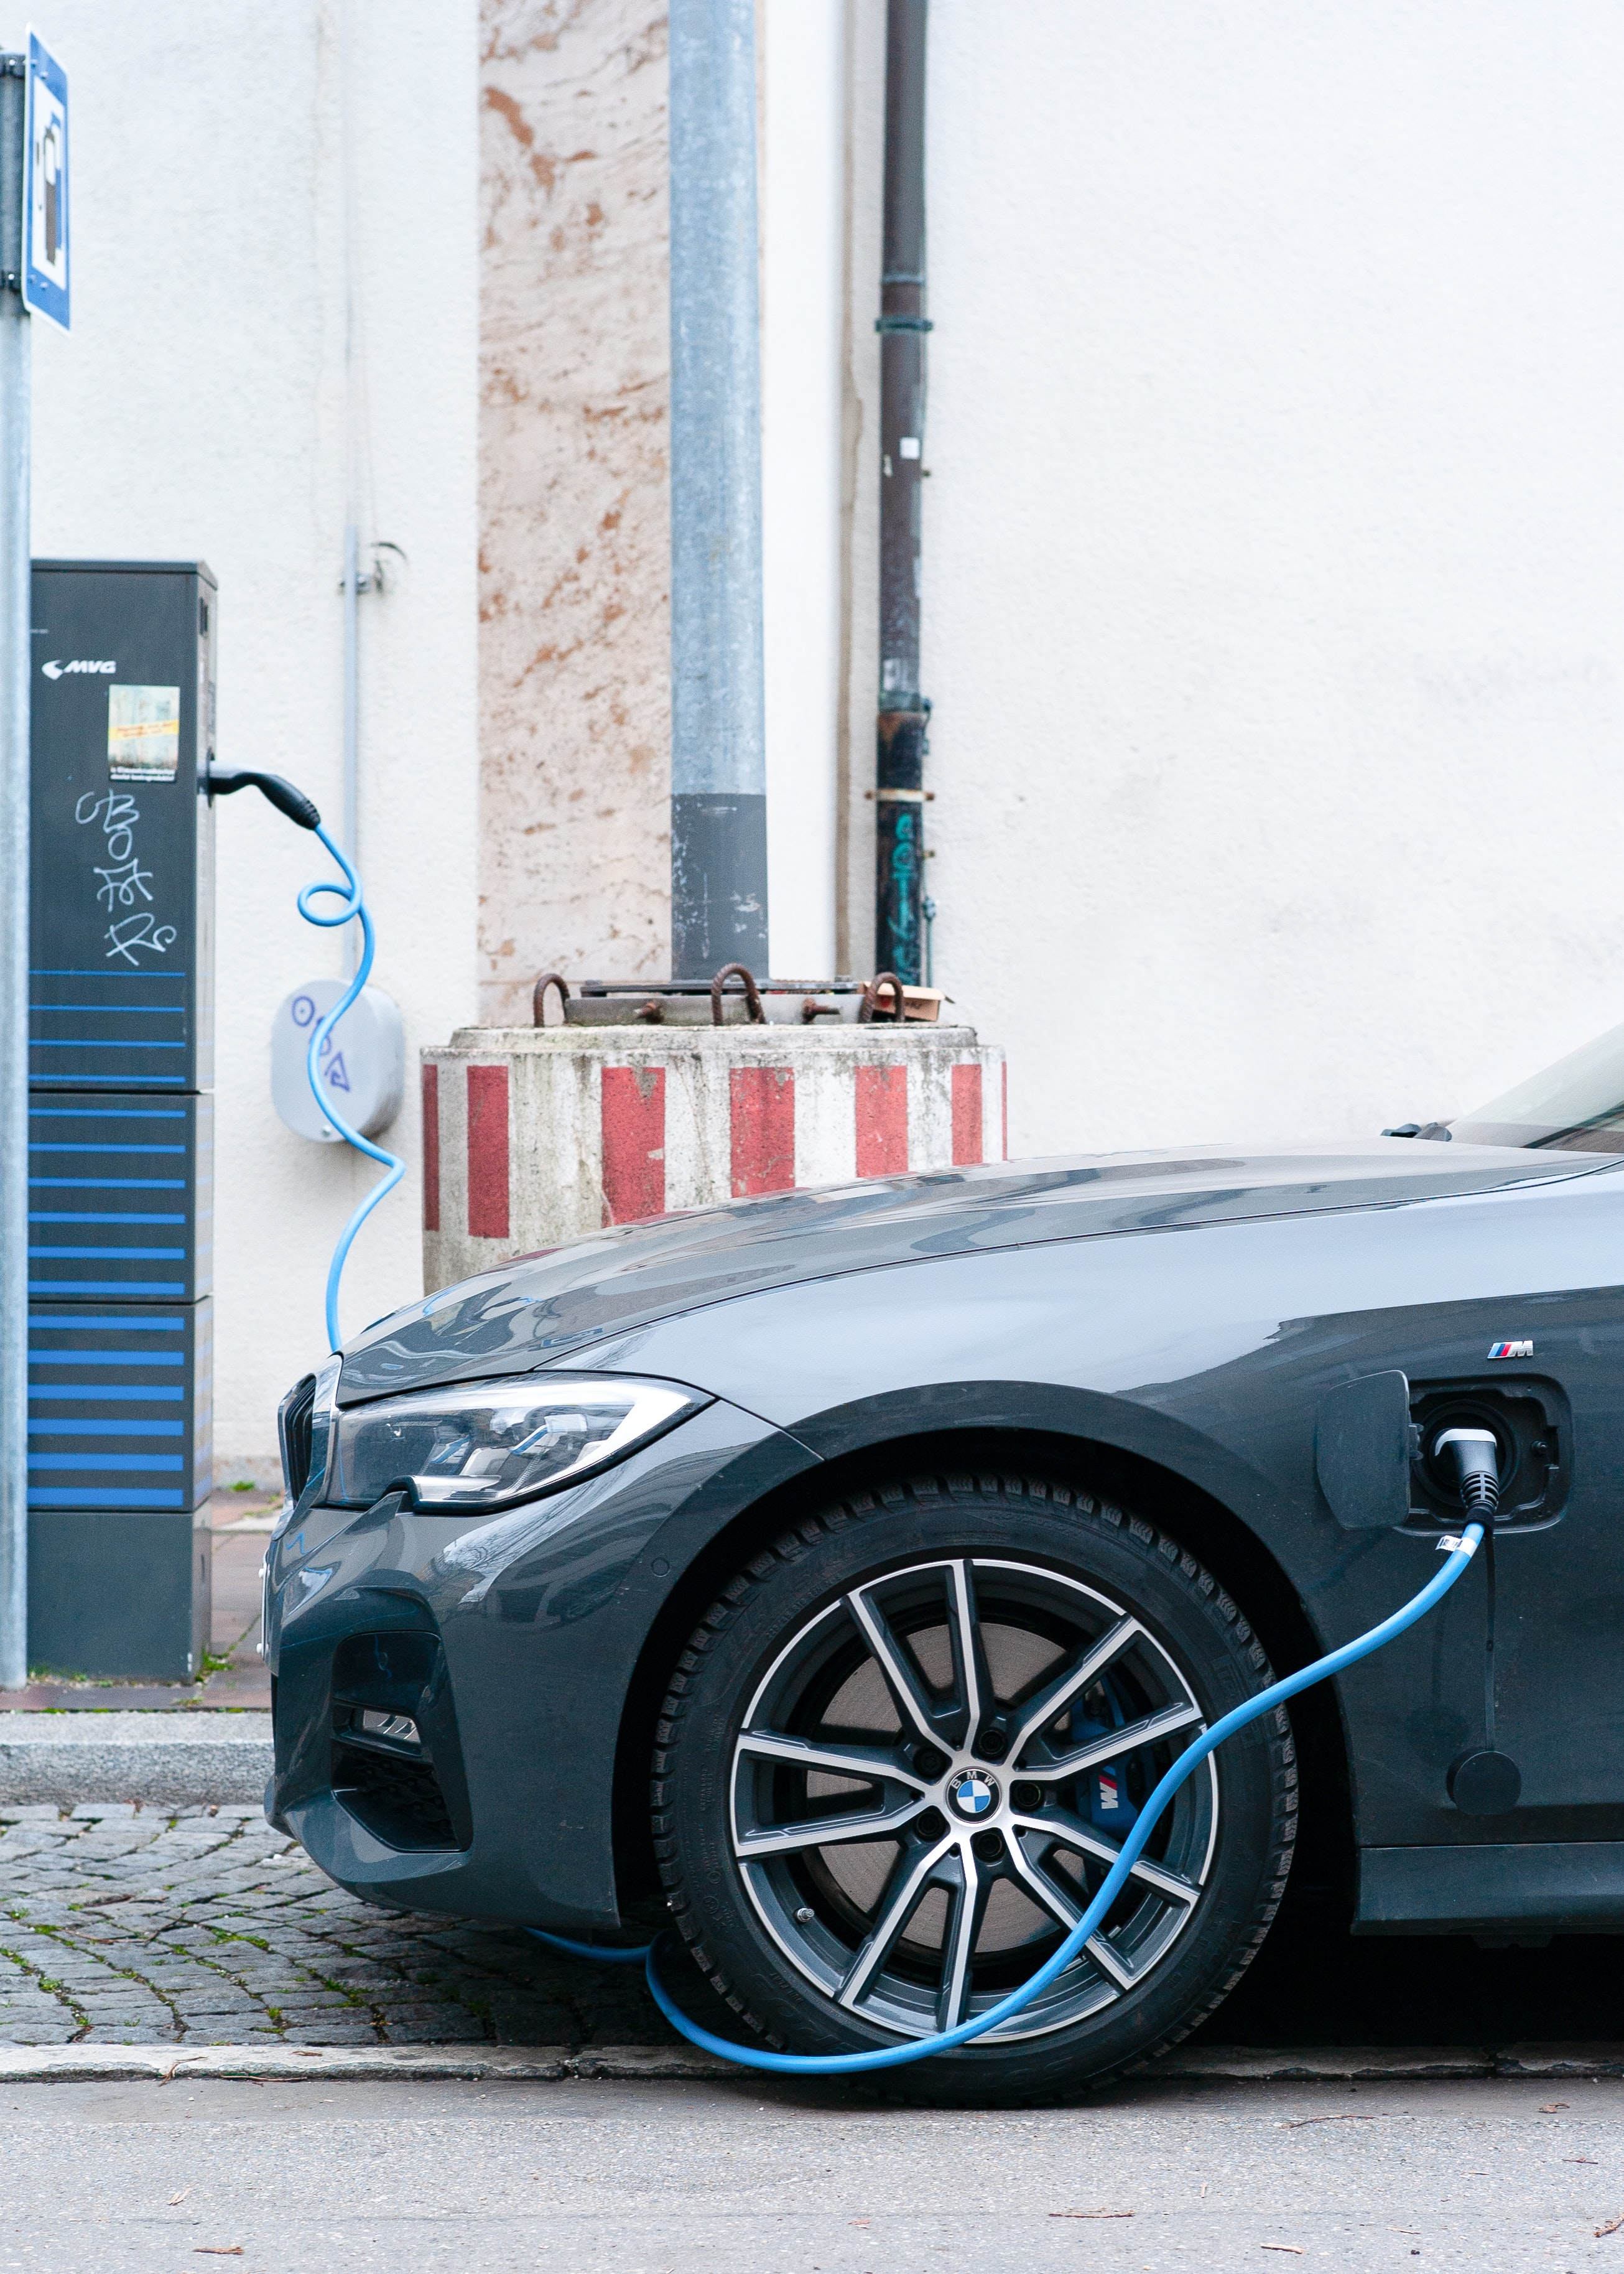 Electric vehicle plugged in at a charging point